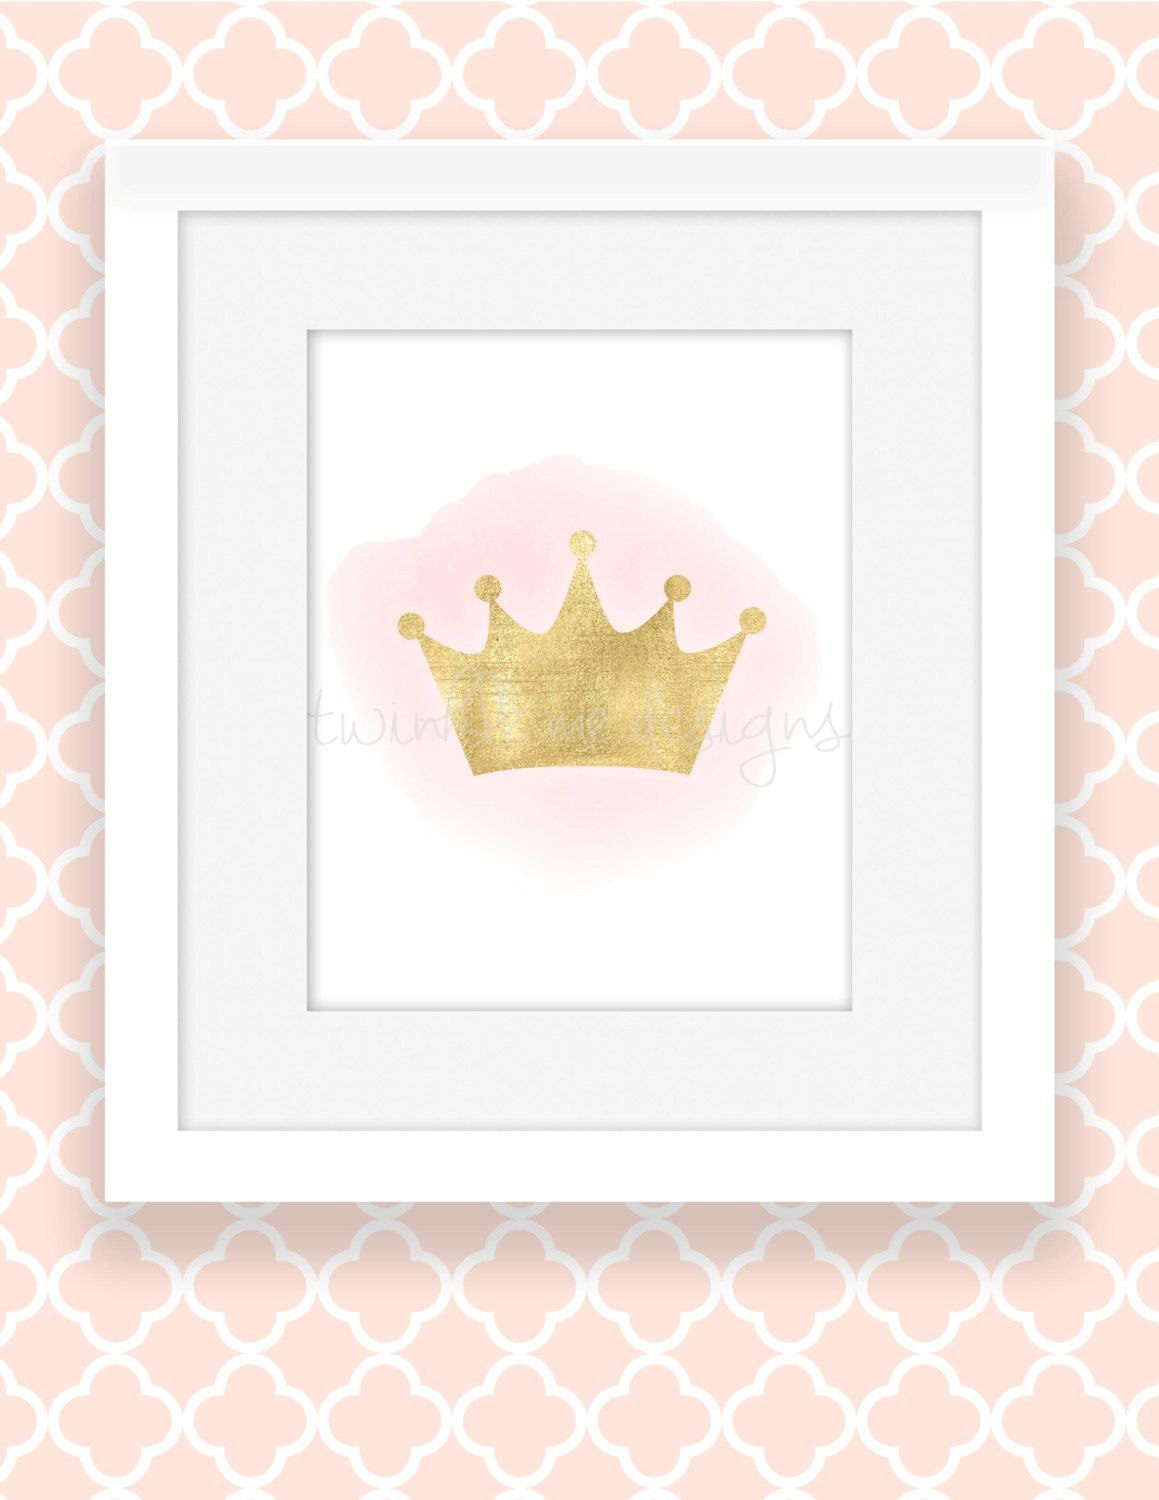 Pink and gold princess wall decor girl nursery decor princess pink and gold princess wall decor girl nursery decor princess printables nursery wall art pink and gold birthday princess room prints amipublicfo Image collections